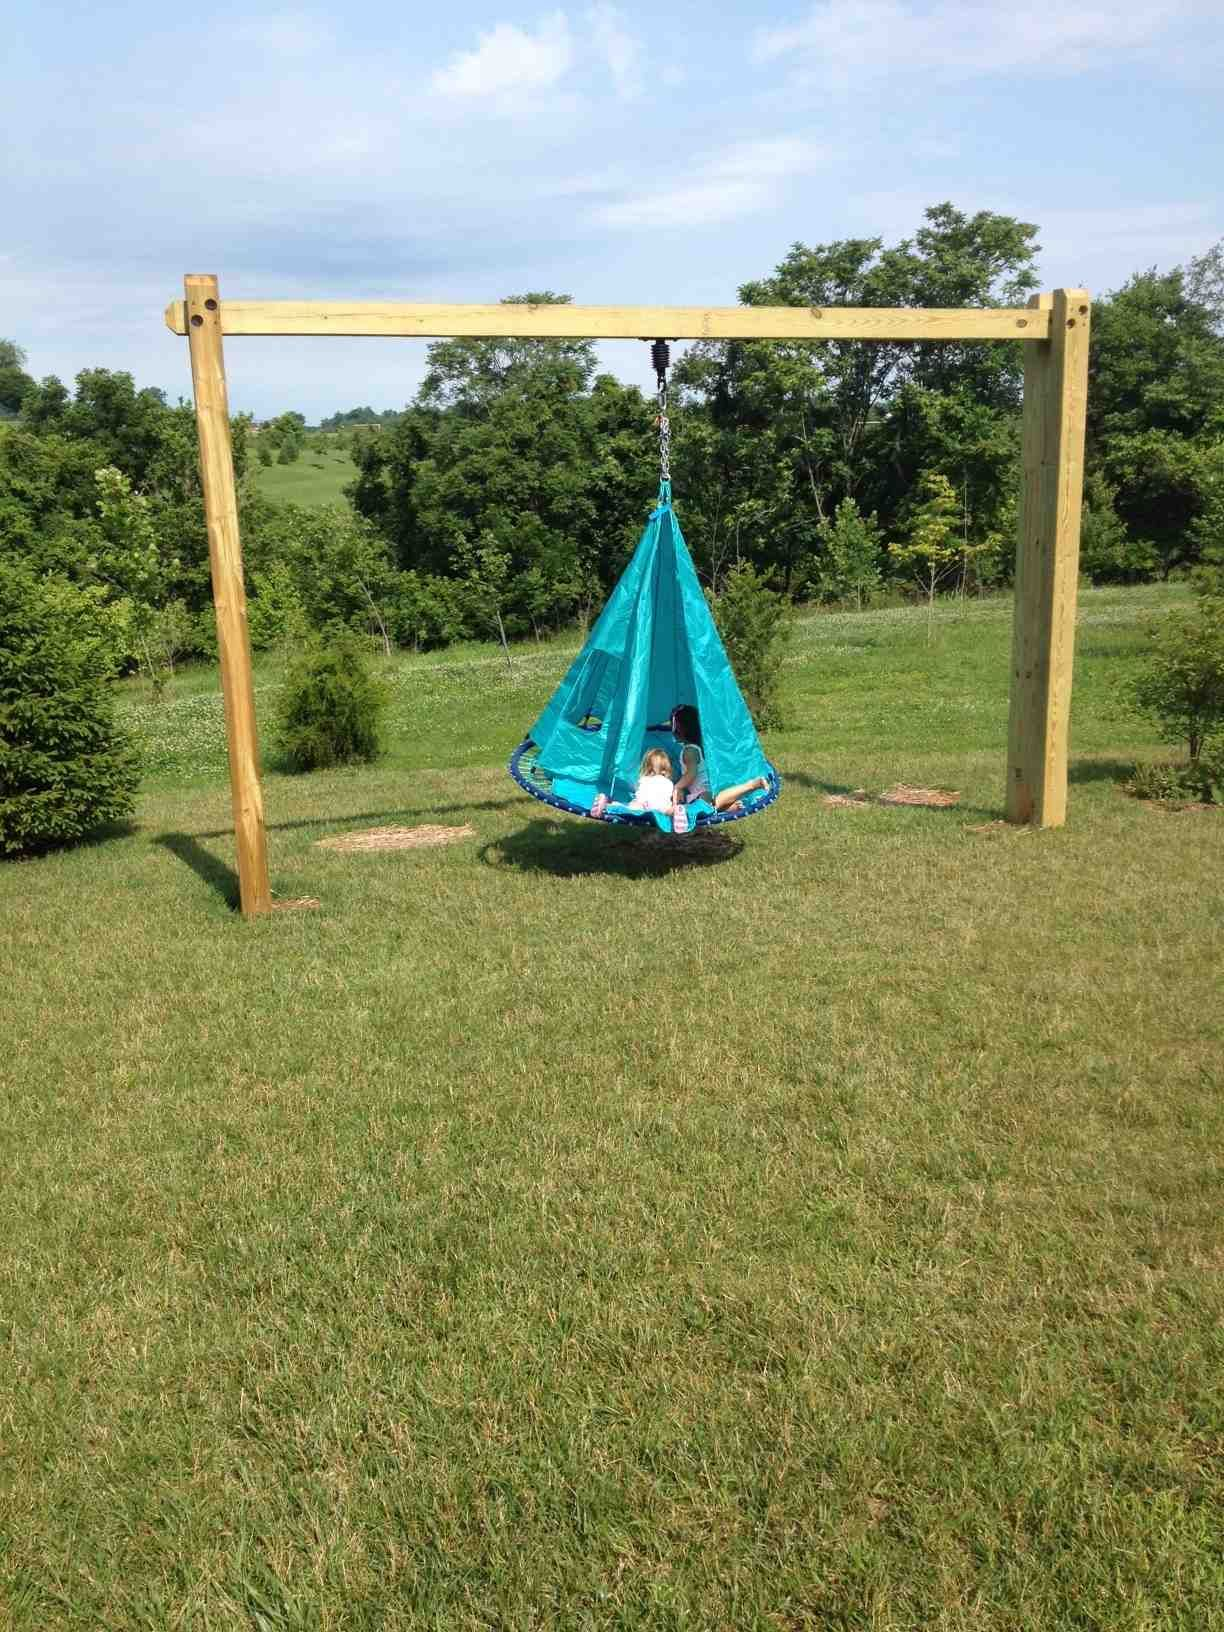 Even Without Trees Now Our Kids Can Swing Used A Hearthsong Sky Island Swing Which Is 5 Feet In Diameter And P Backyard Fun Backyard For Kids Diy Tire Swing